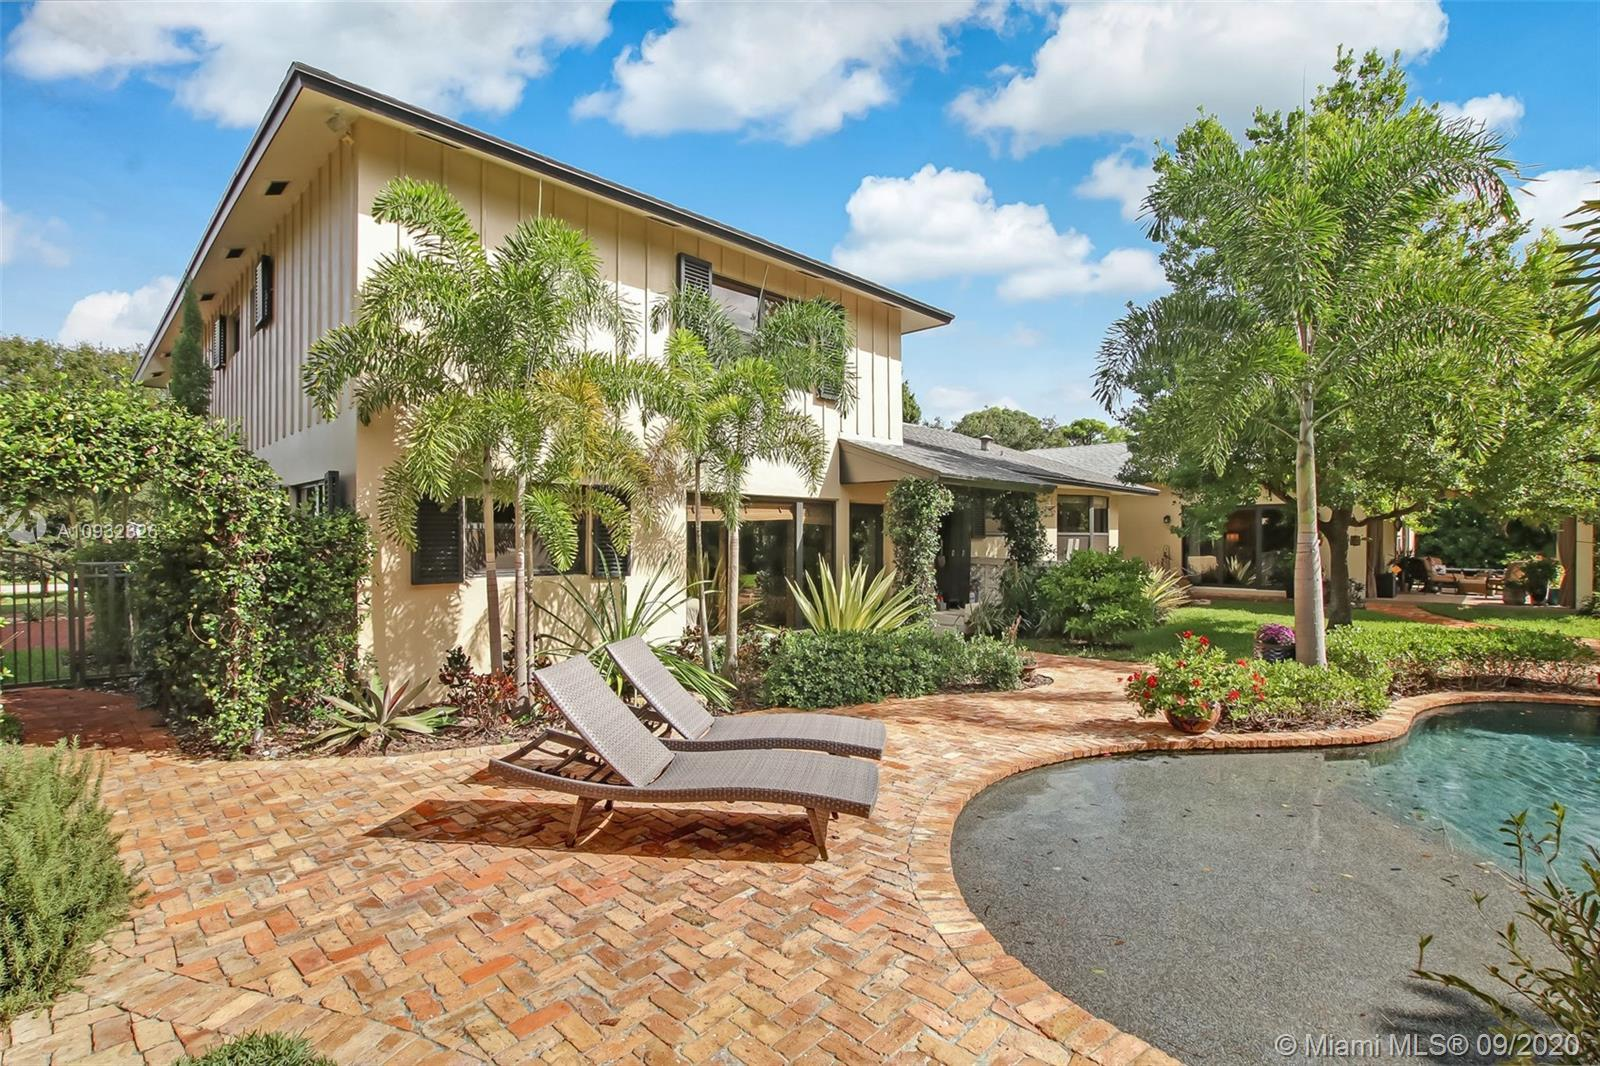 A remarkable blend of old Florida charm and modern convenience in this rare Jupiter home with water